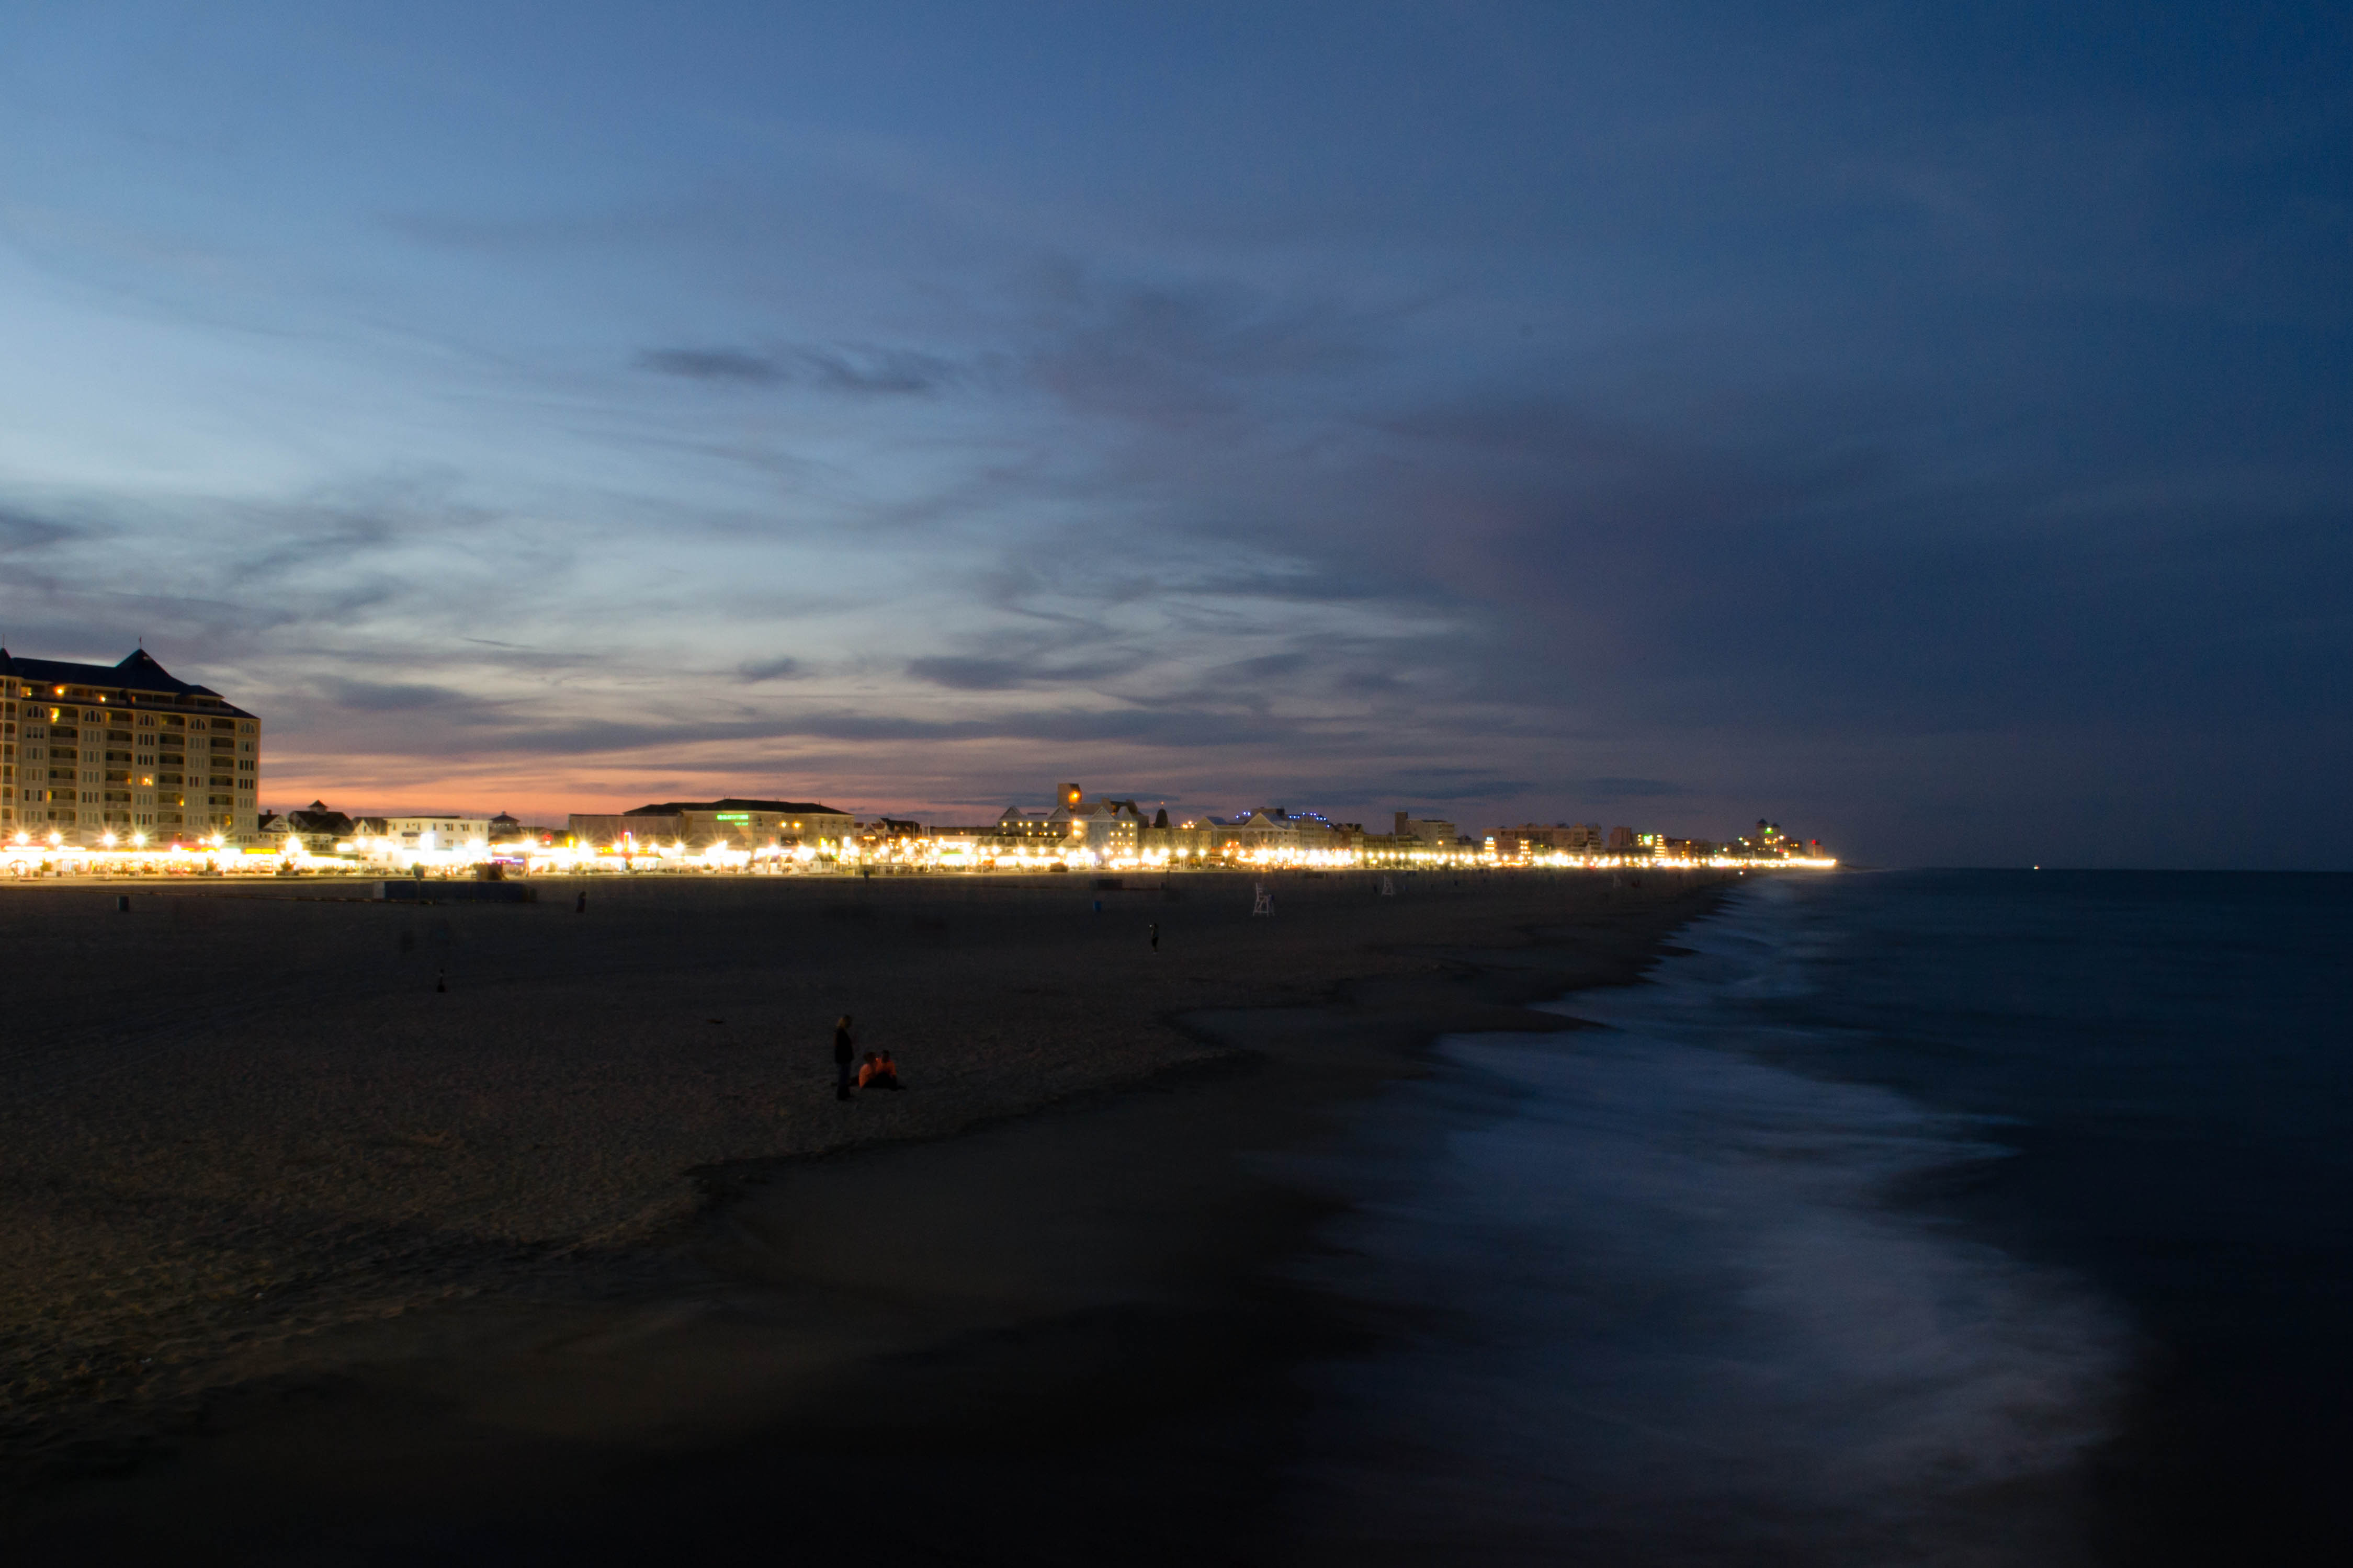 ocean city chat Meet thousands of local singles in the ocean city, new jersey dating area today find your true love at matchmakercom.